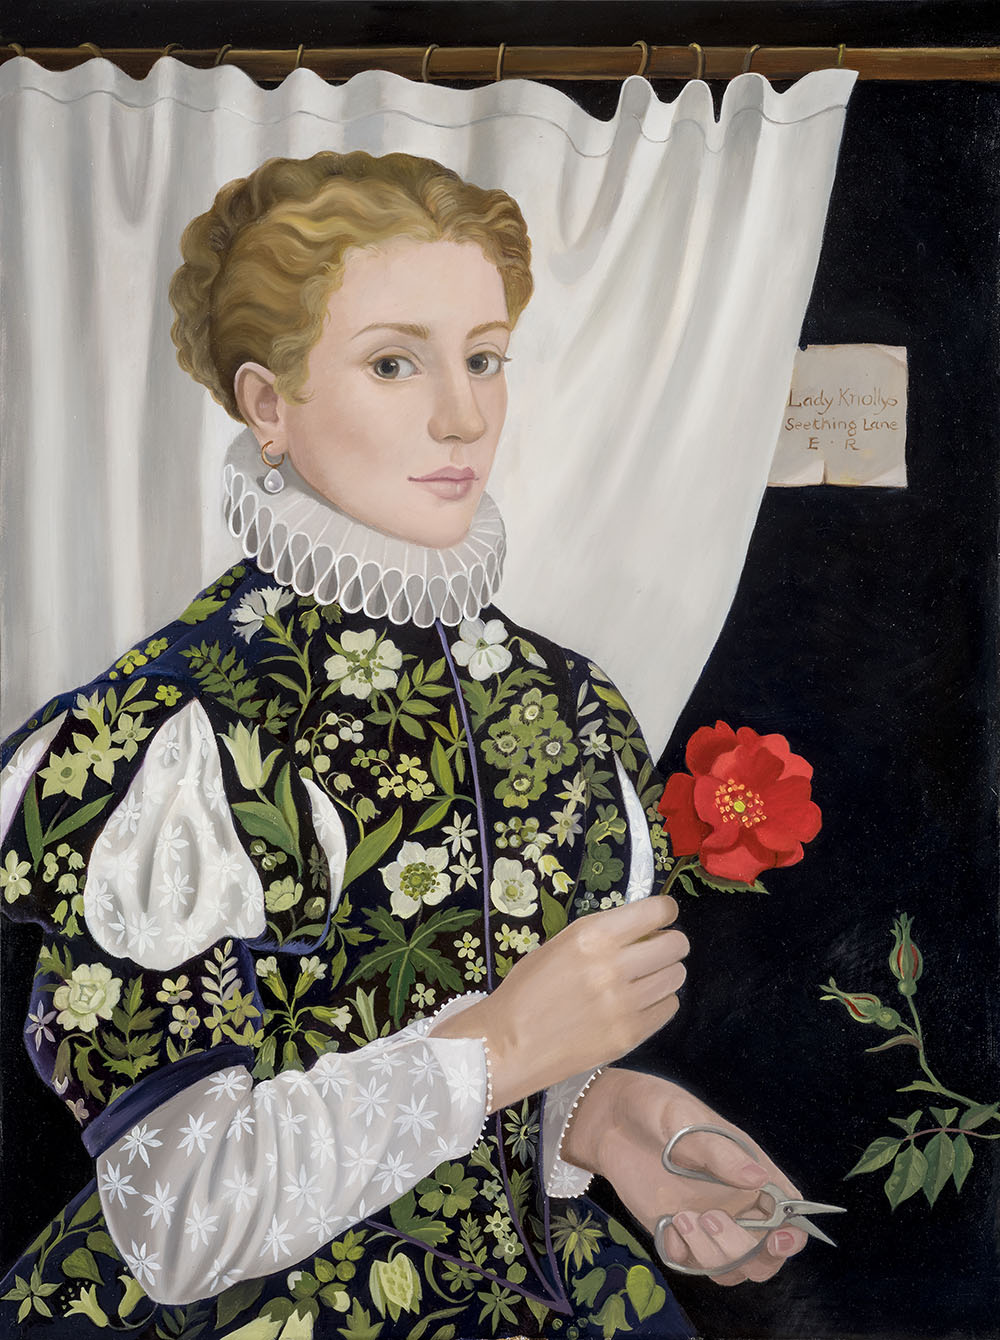 Lizzie Riches